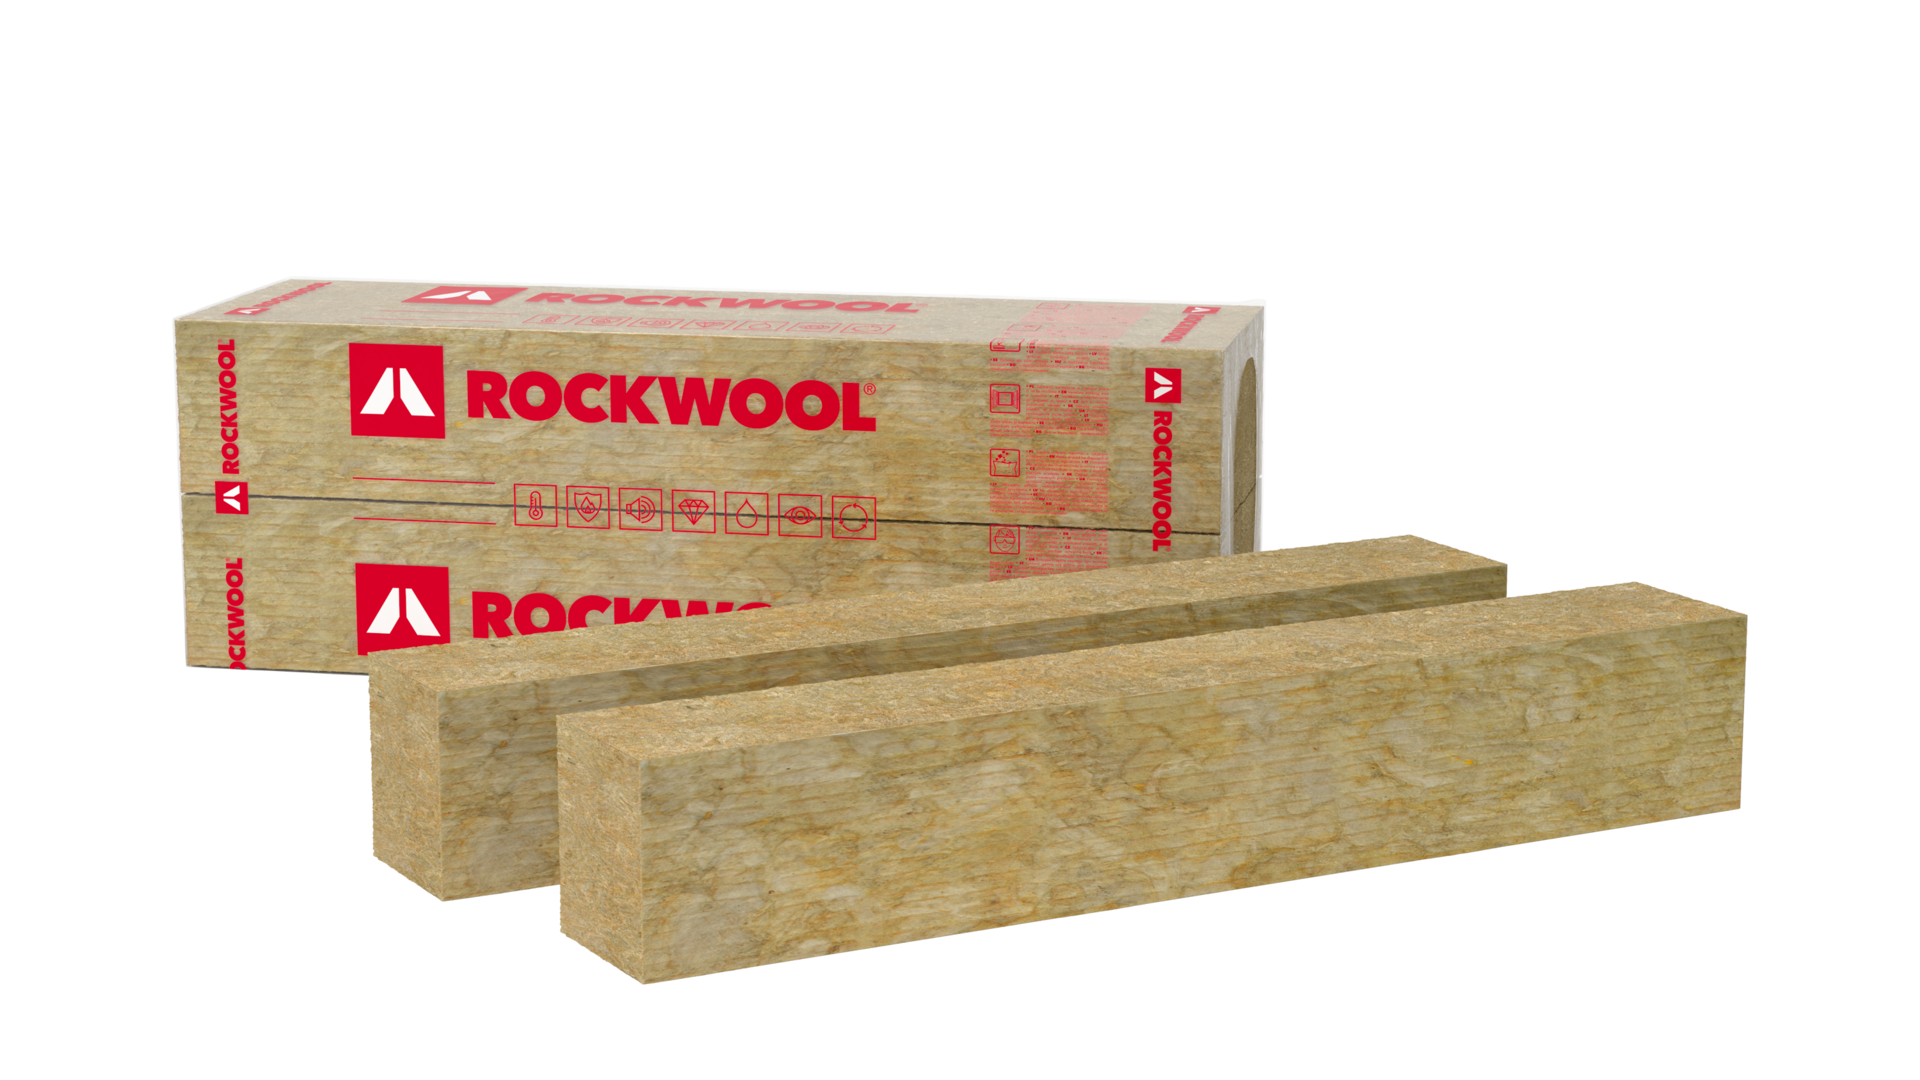 package, slabs, etics, ewi, facade, products, external wall insulation, rendered facade, frontrock l